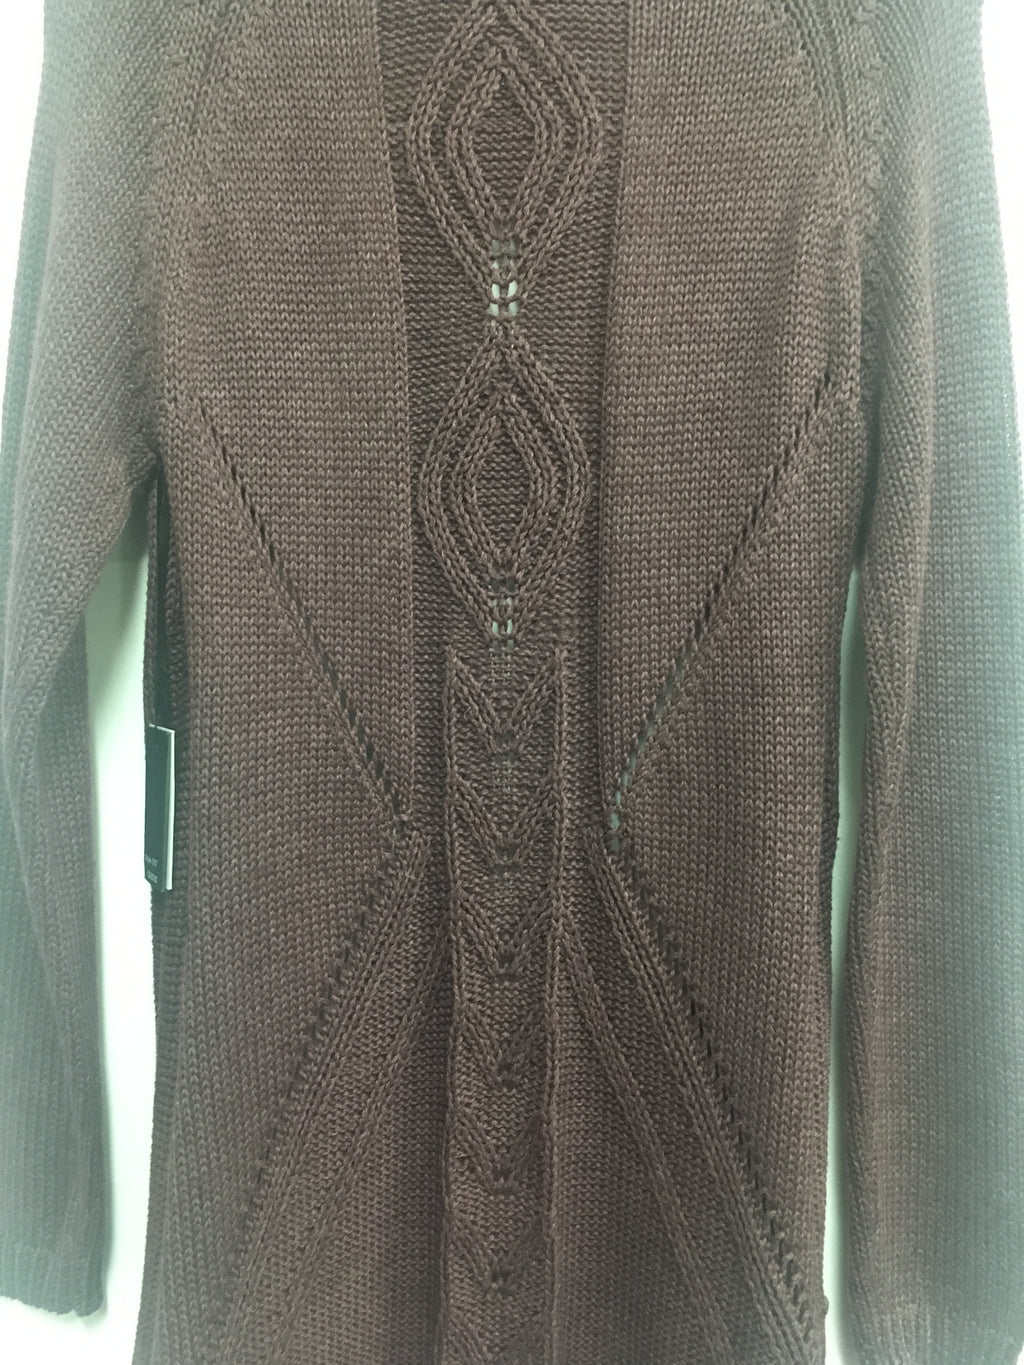 Cardigan w/back Cable Knit - She's Got Leggz